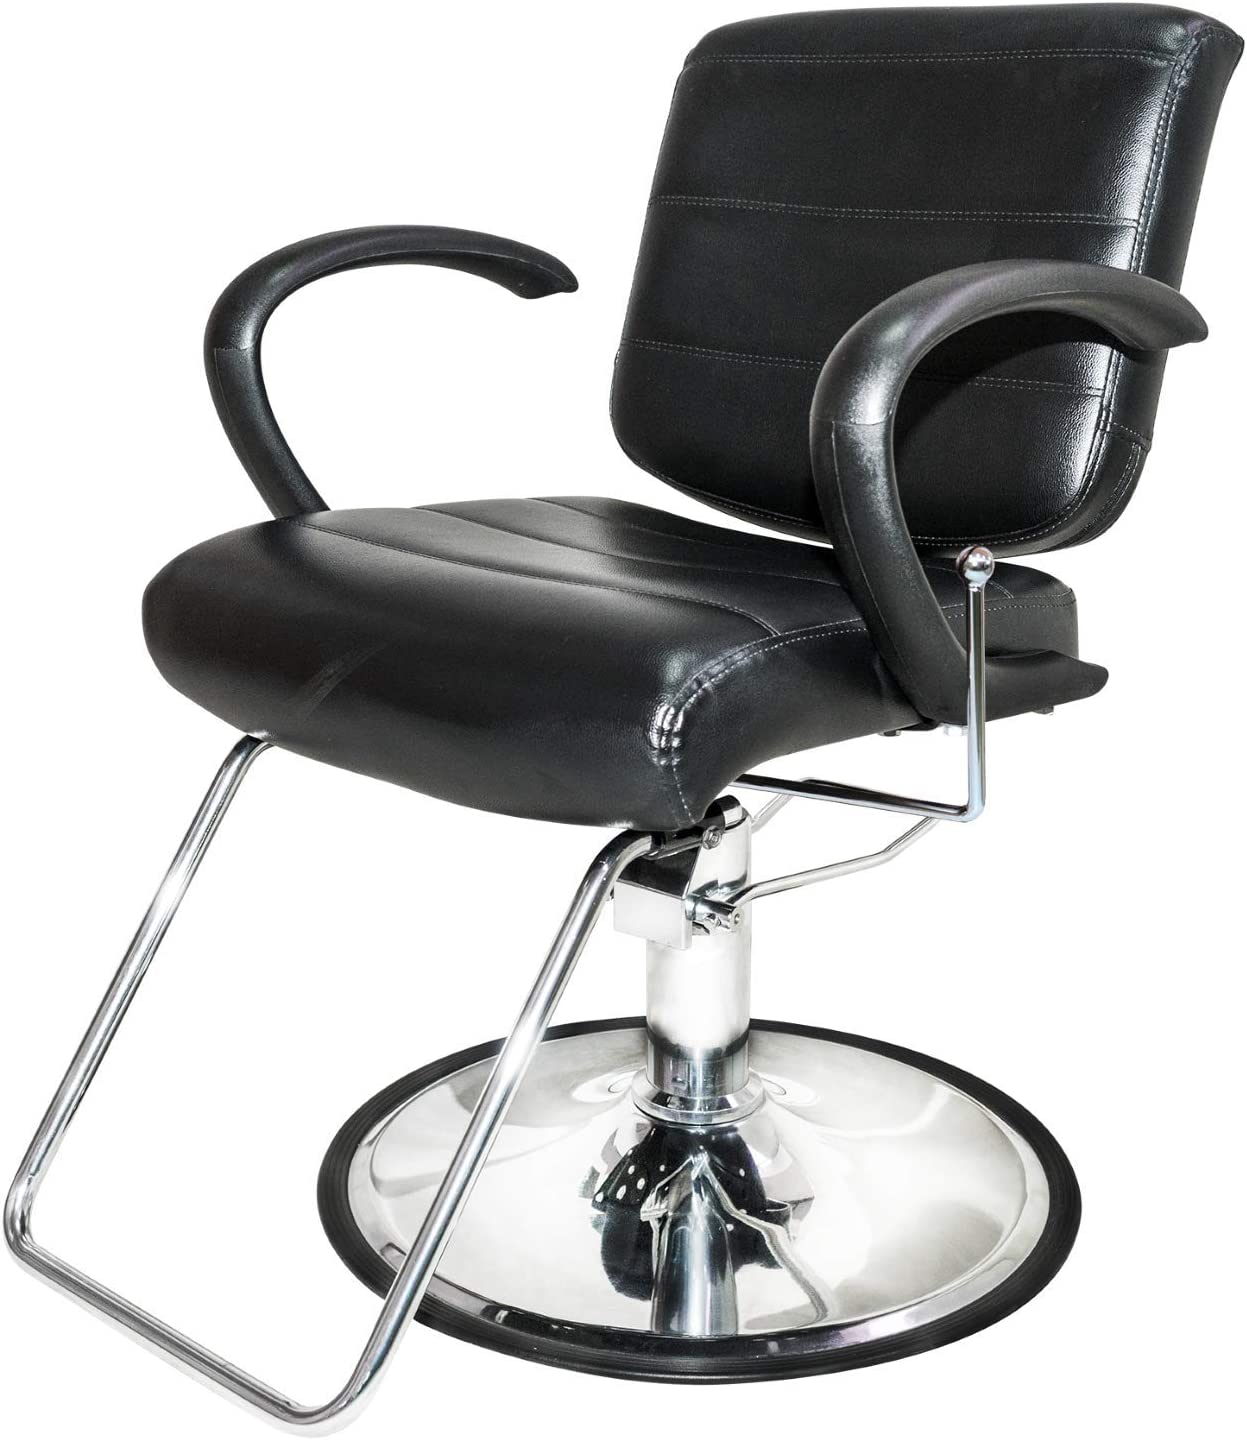 Chromium by PureSana Professional Salon All Purpose Chair [2043], Sealed Hydraulic Pump, Premium Vinyl Material, Reclines and Rotates 360 Degrees, Salon Quality: Kitchen & Dining